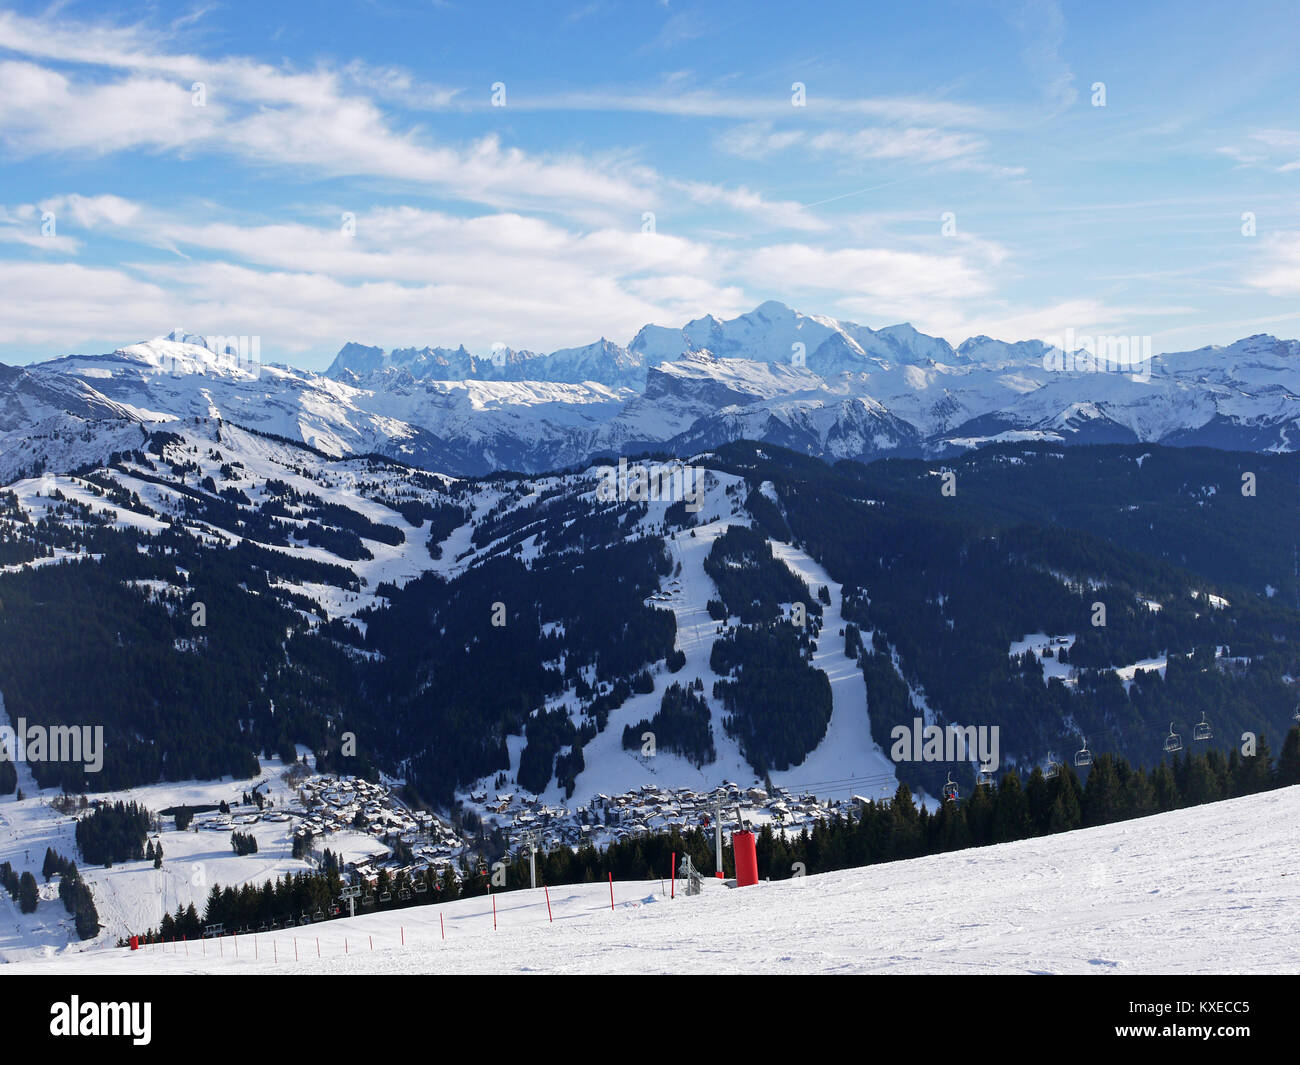 General view of the ski resort of Les Gets France showing the satellite village of La Turche and its trails Stock Photo